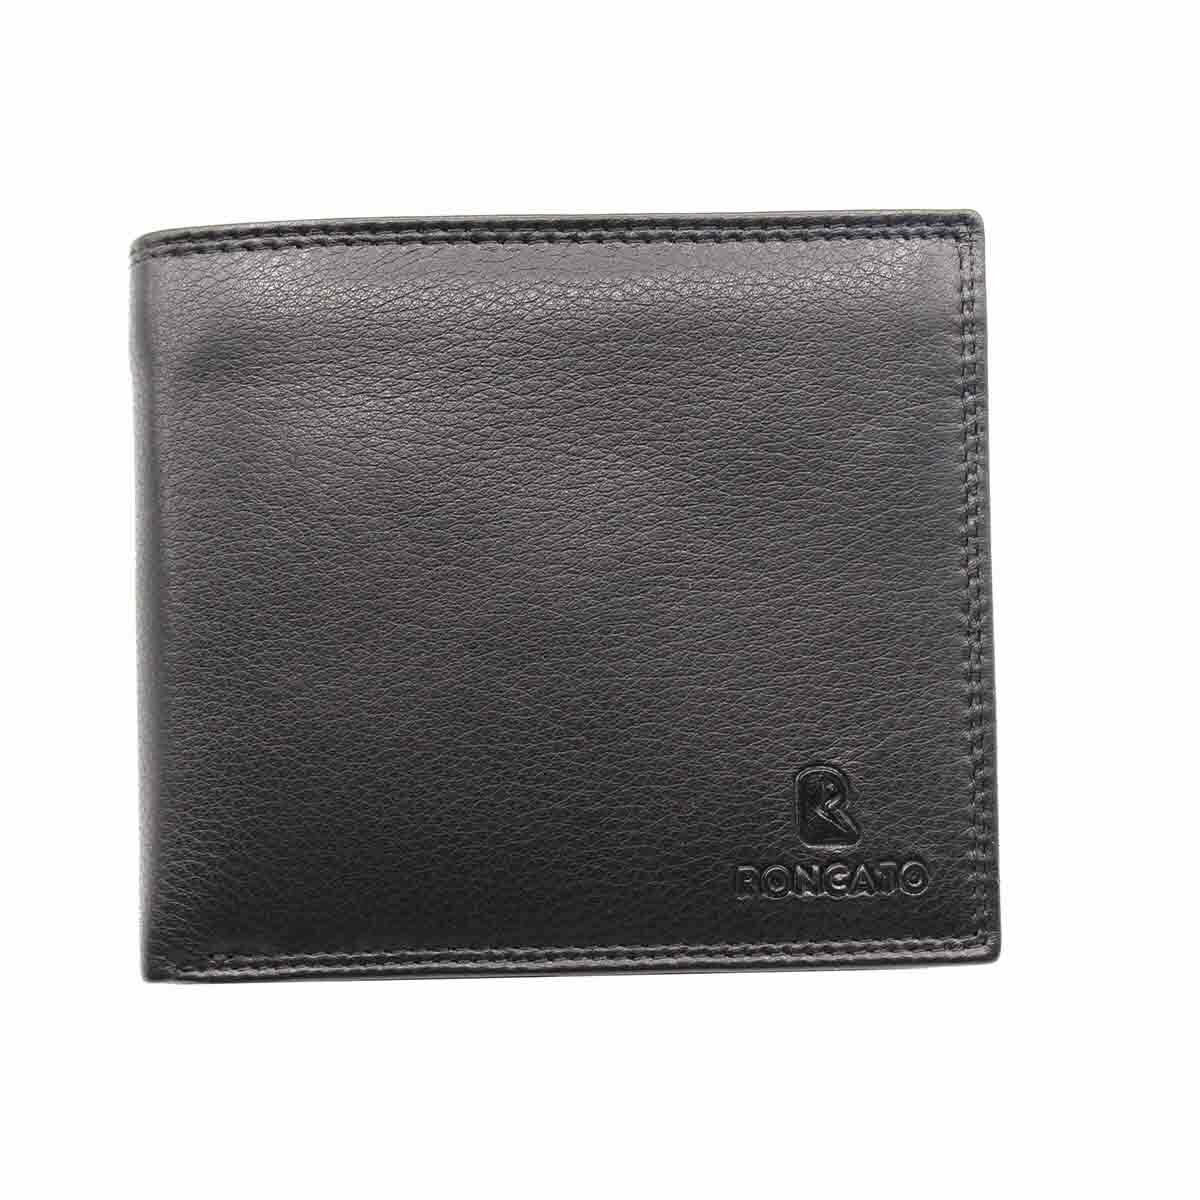 Men's Wallet, Genuine Leather Credit Card Holder Banknote Card Photo R Roncato